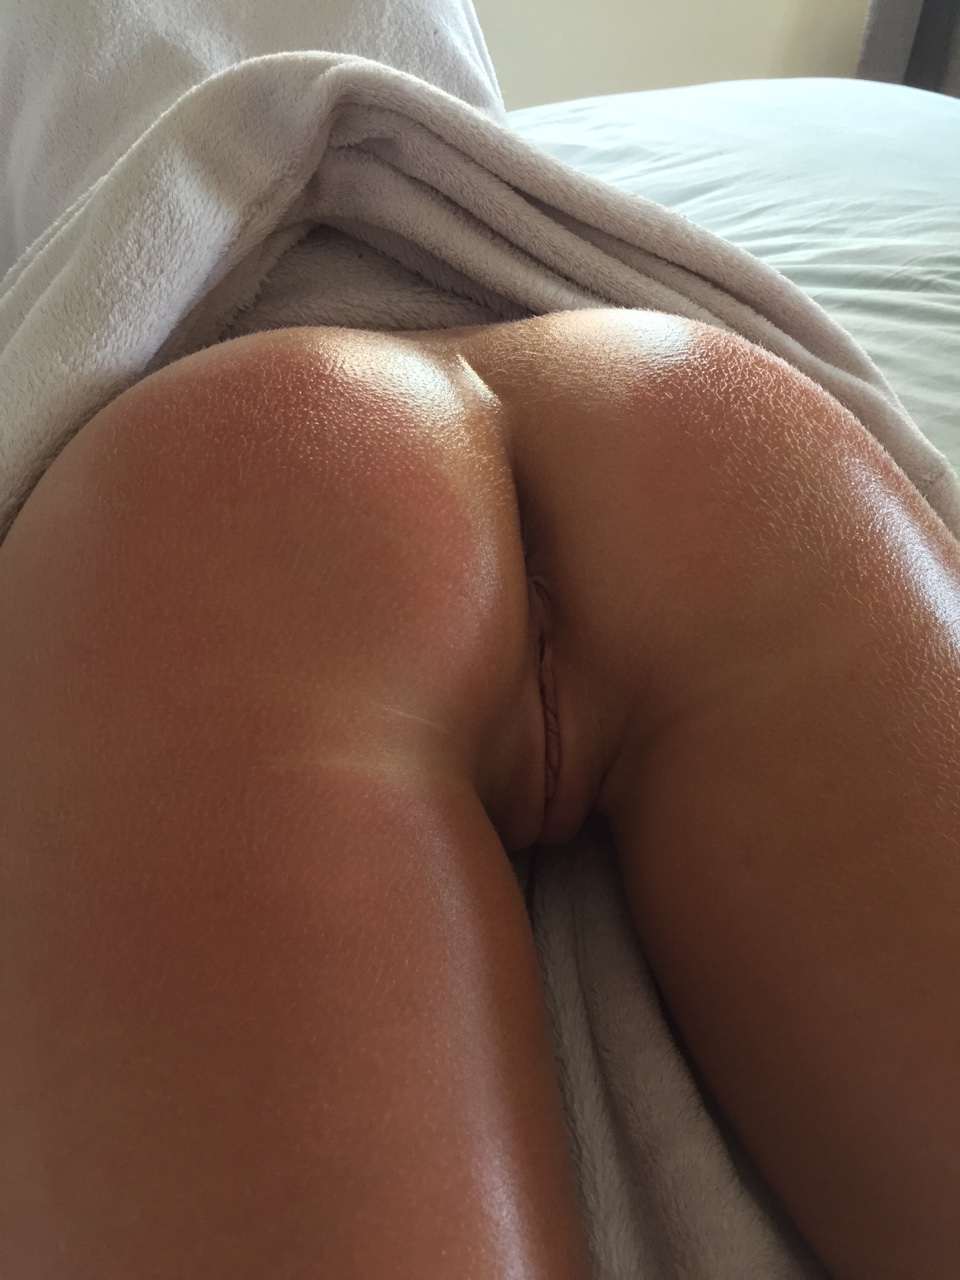 best sexy socks and stockings images on pinterest legs #backside #bentover #allfours #ass #asshole #hairlesspussy